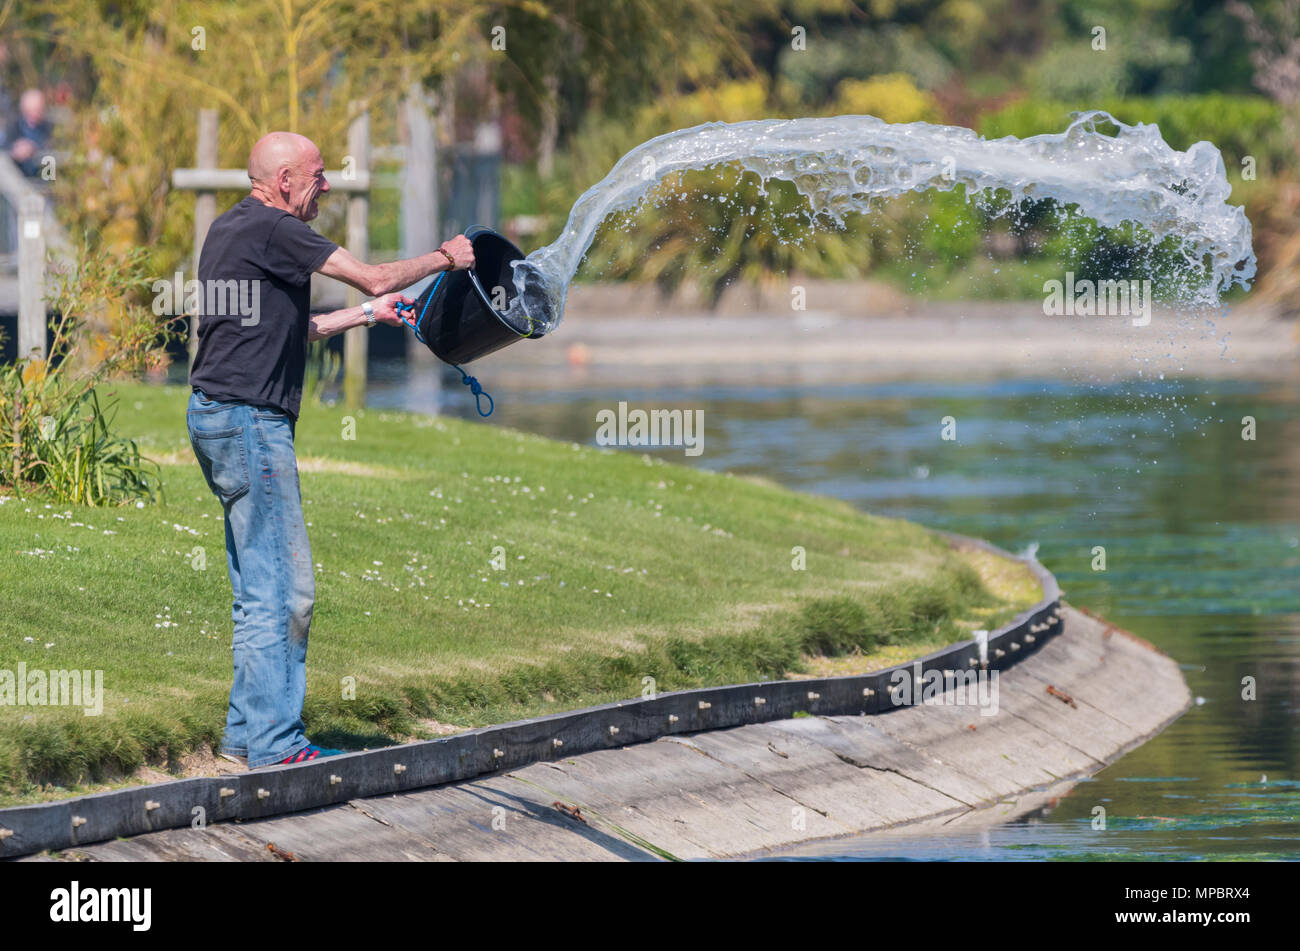 Man throwing treated water into a lake in a park after mixing water with chemicals. Lake maintenance in the UK. Maintaining water in a lake. - Stock Image